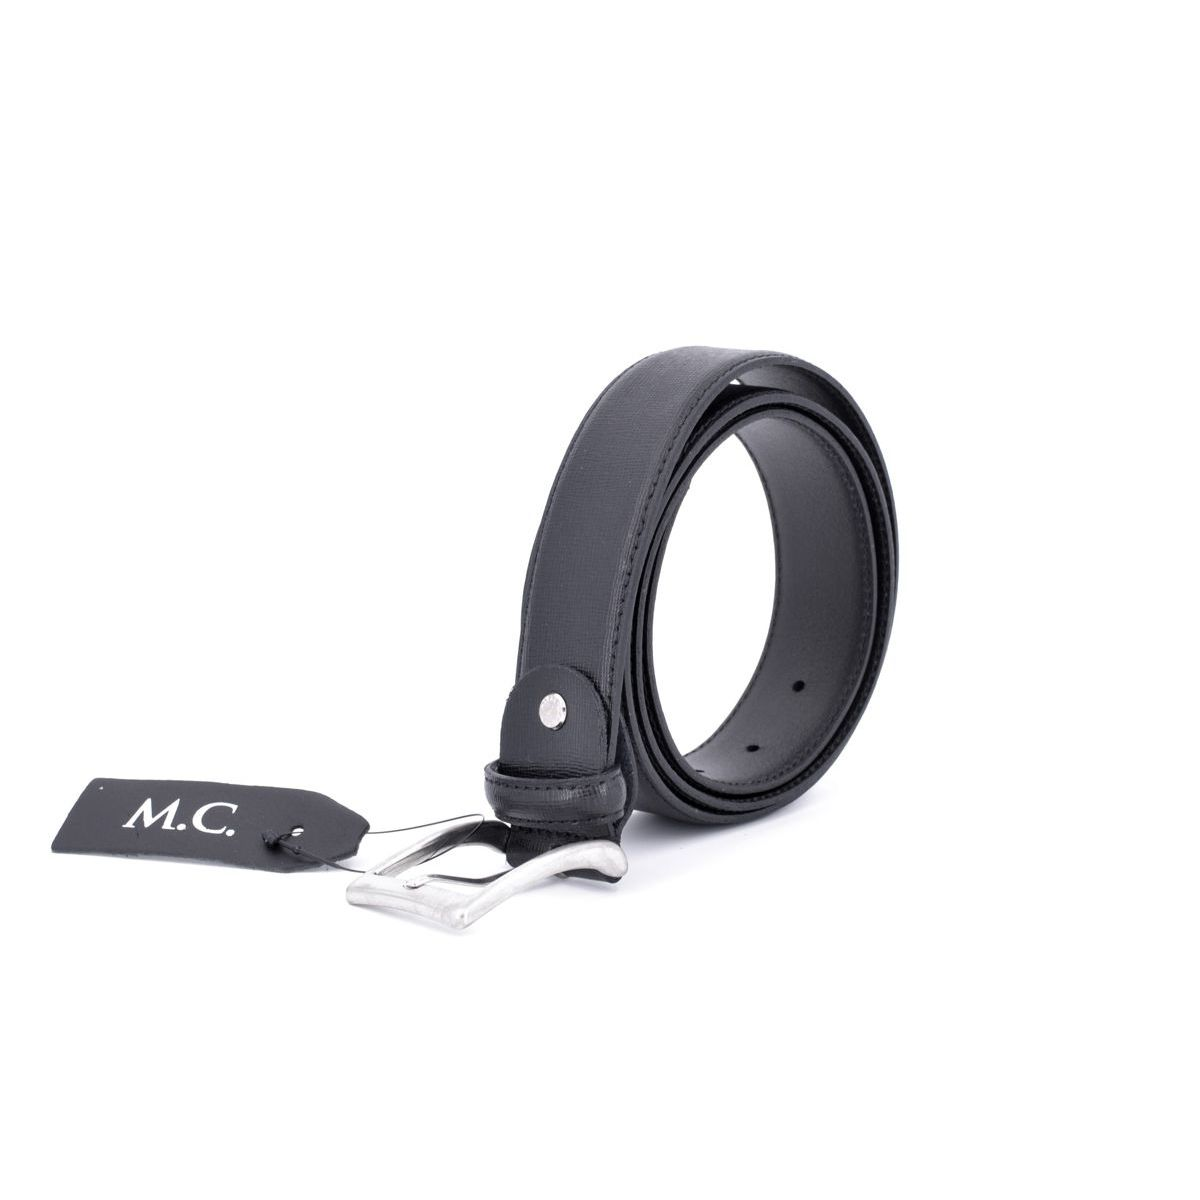 Ruv Belt 004 Black M.C.